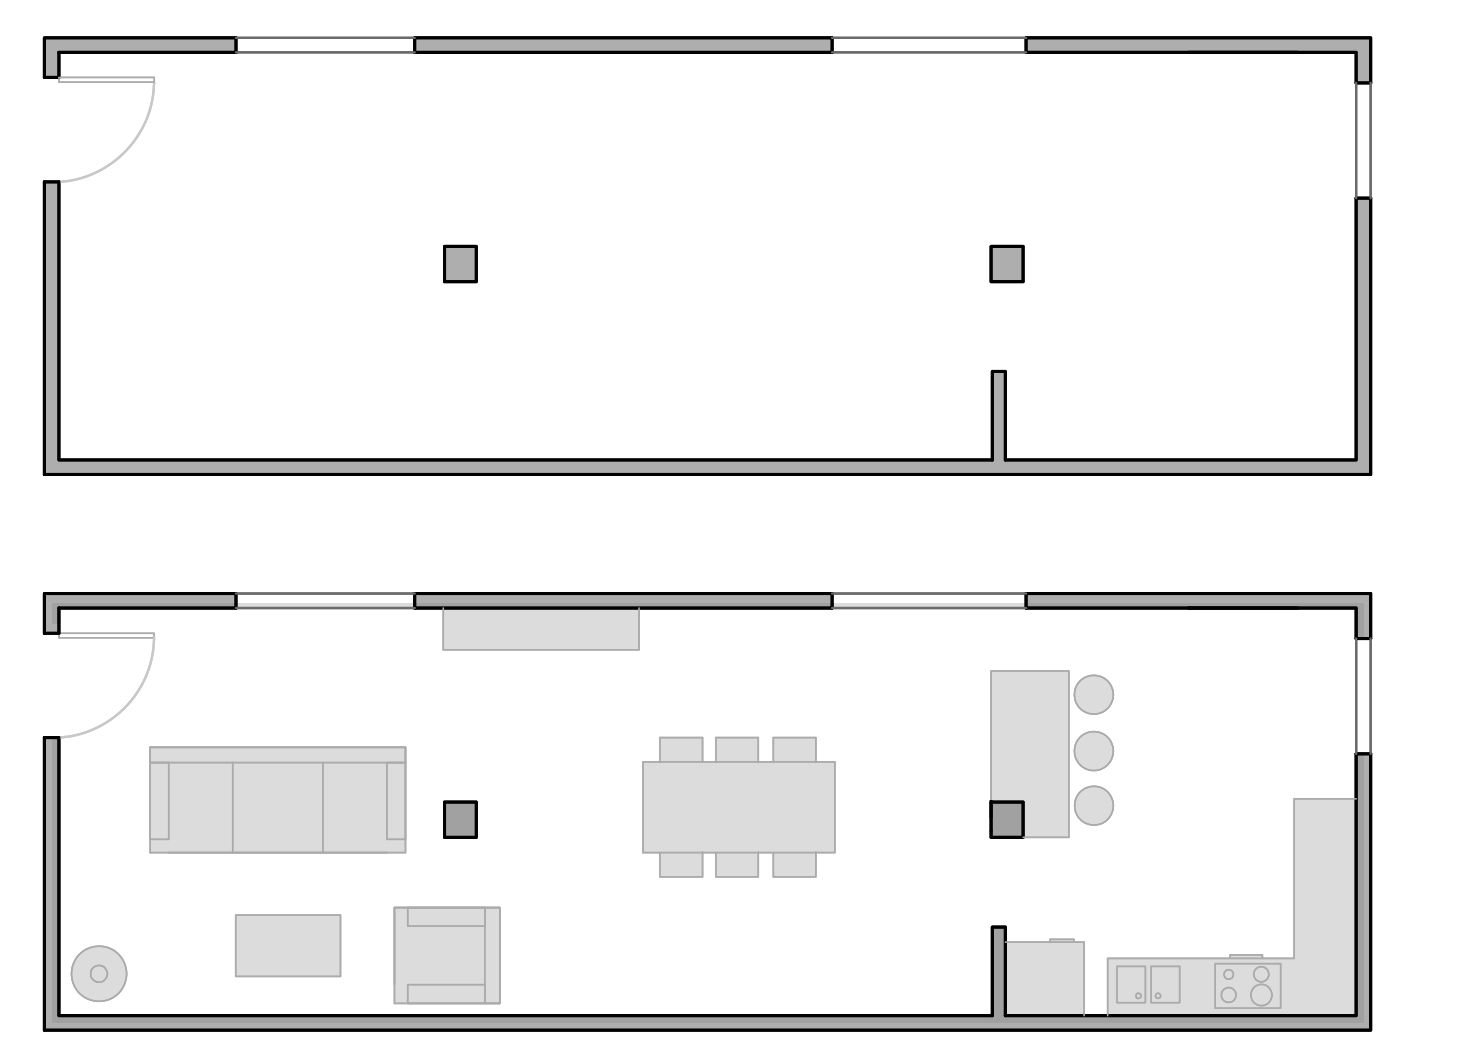 layout with support columns